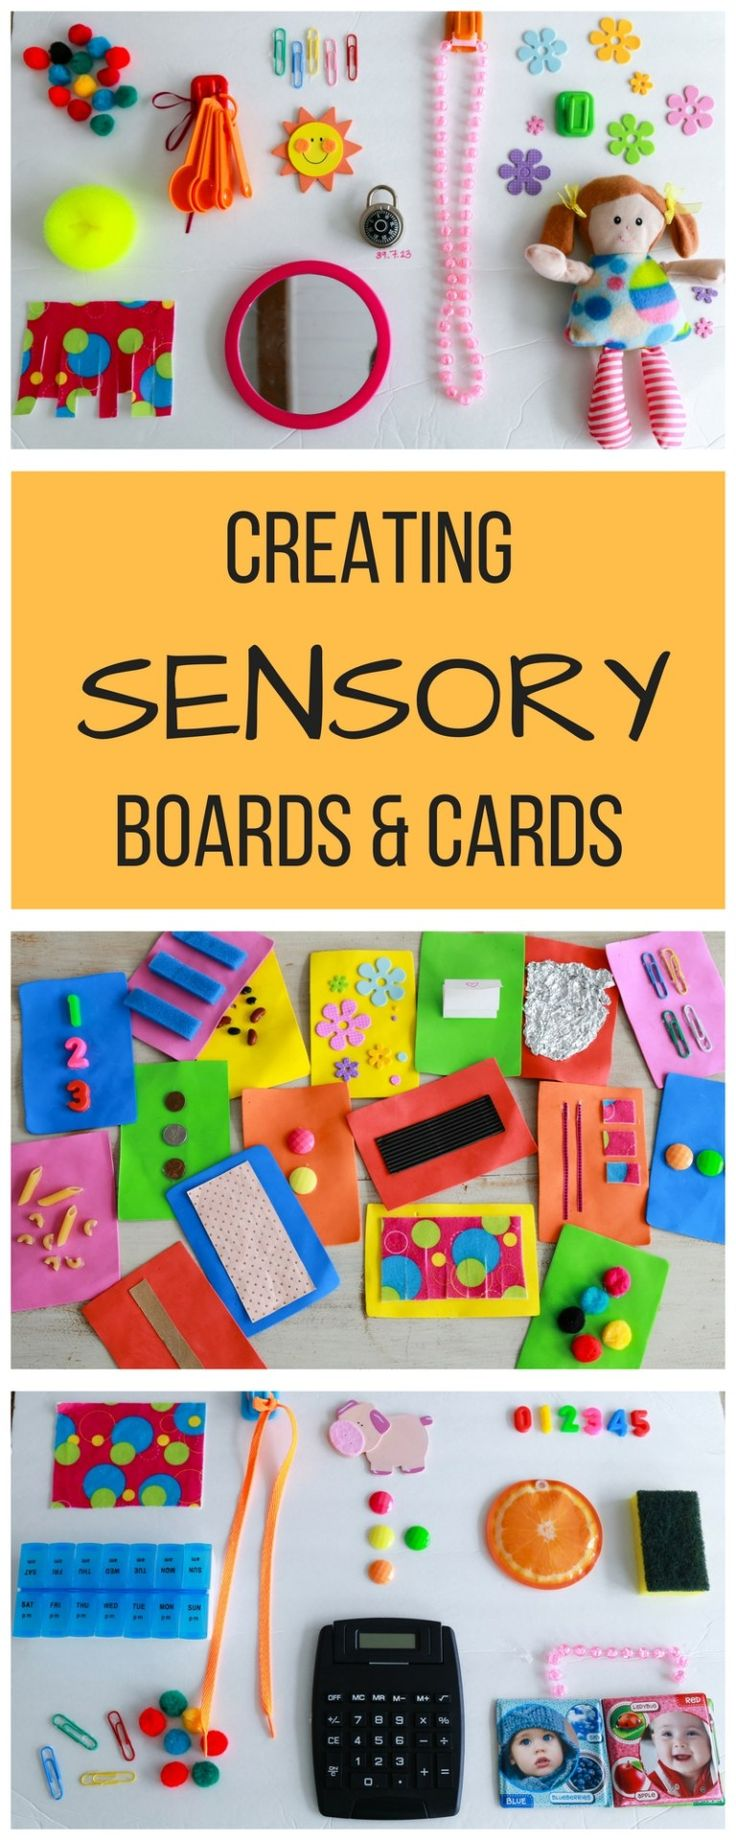 A mom/occupational therapist's guide to making sensory boards and cards for cheap!